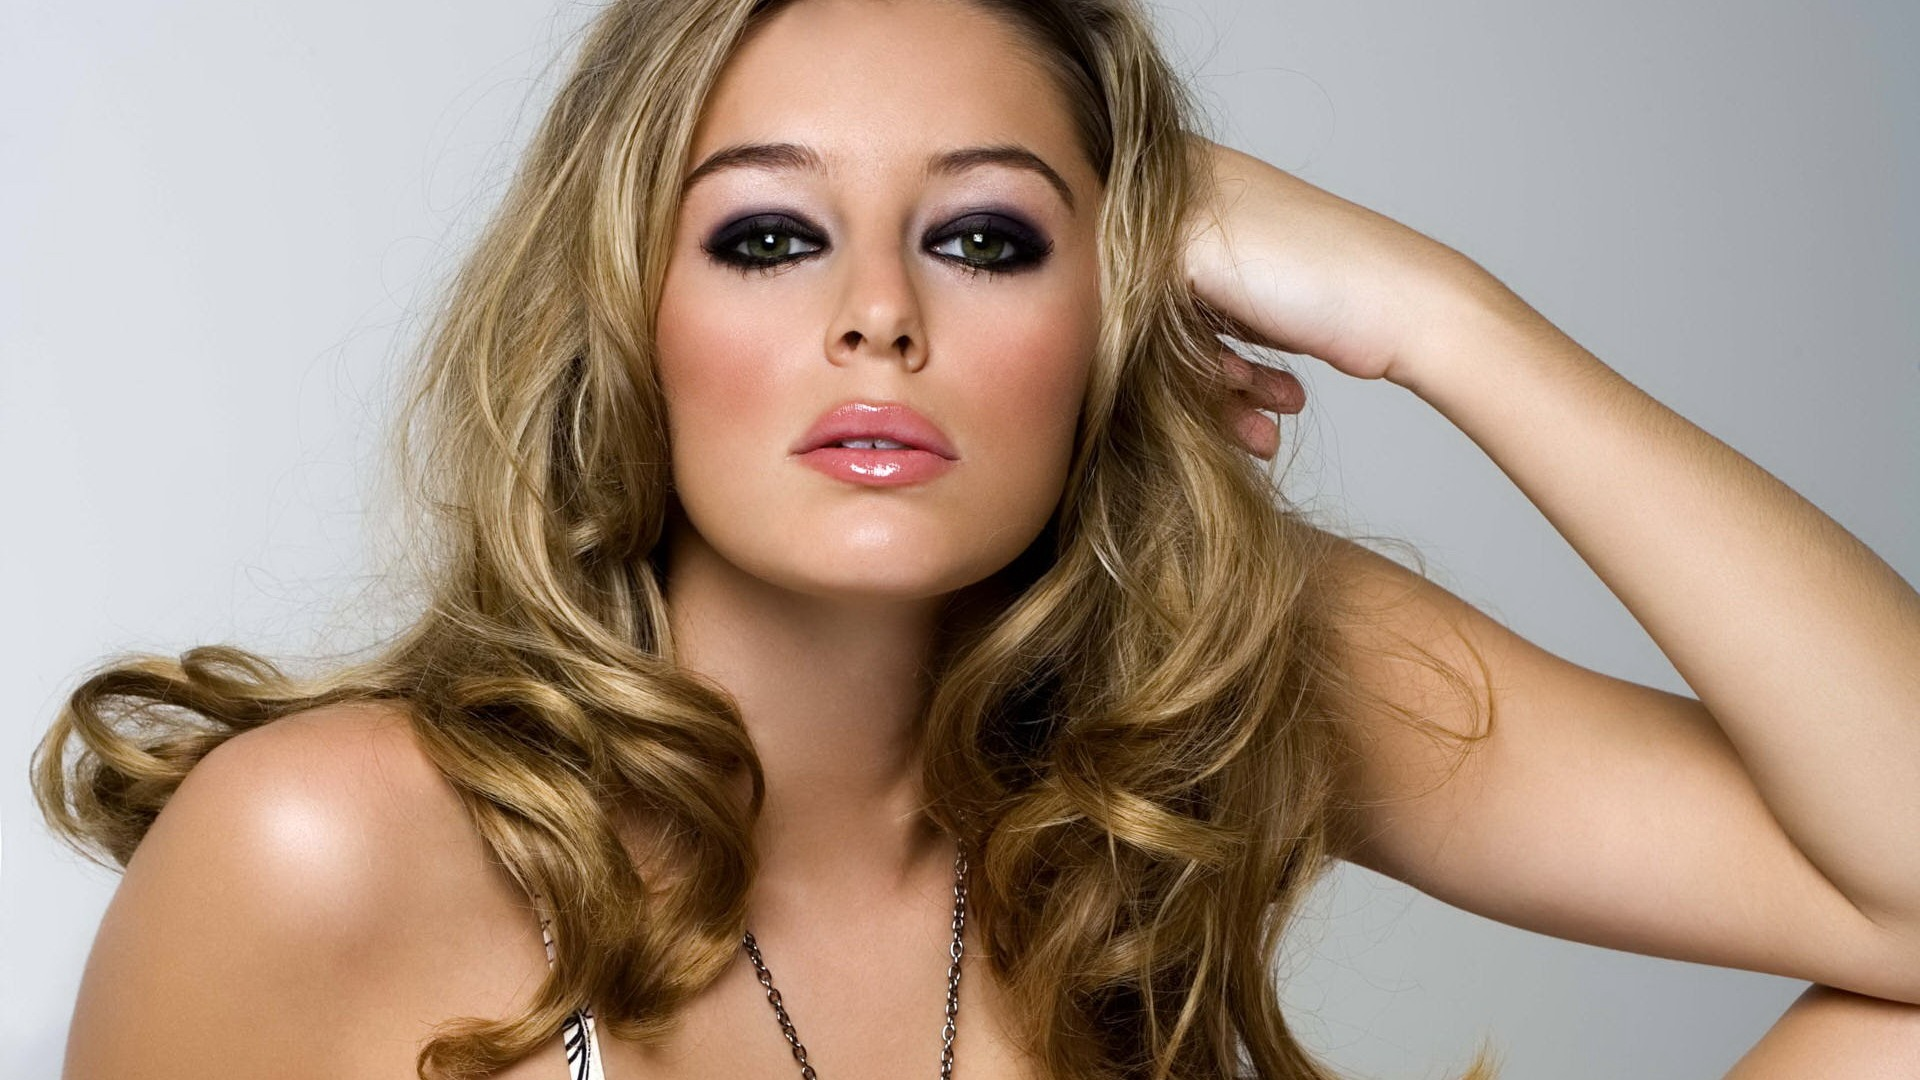 keeley hazell wallpaper 13 - photo #11